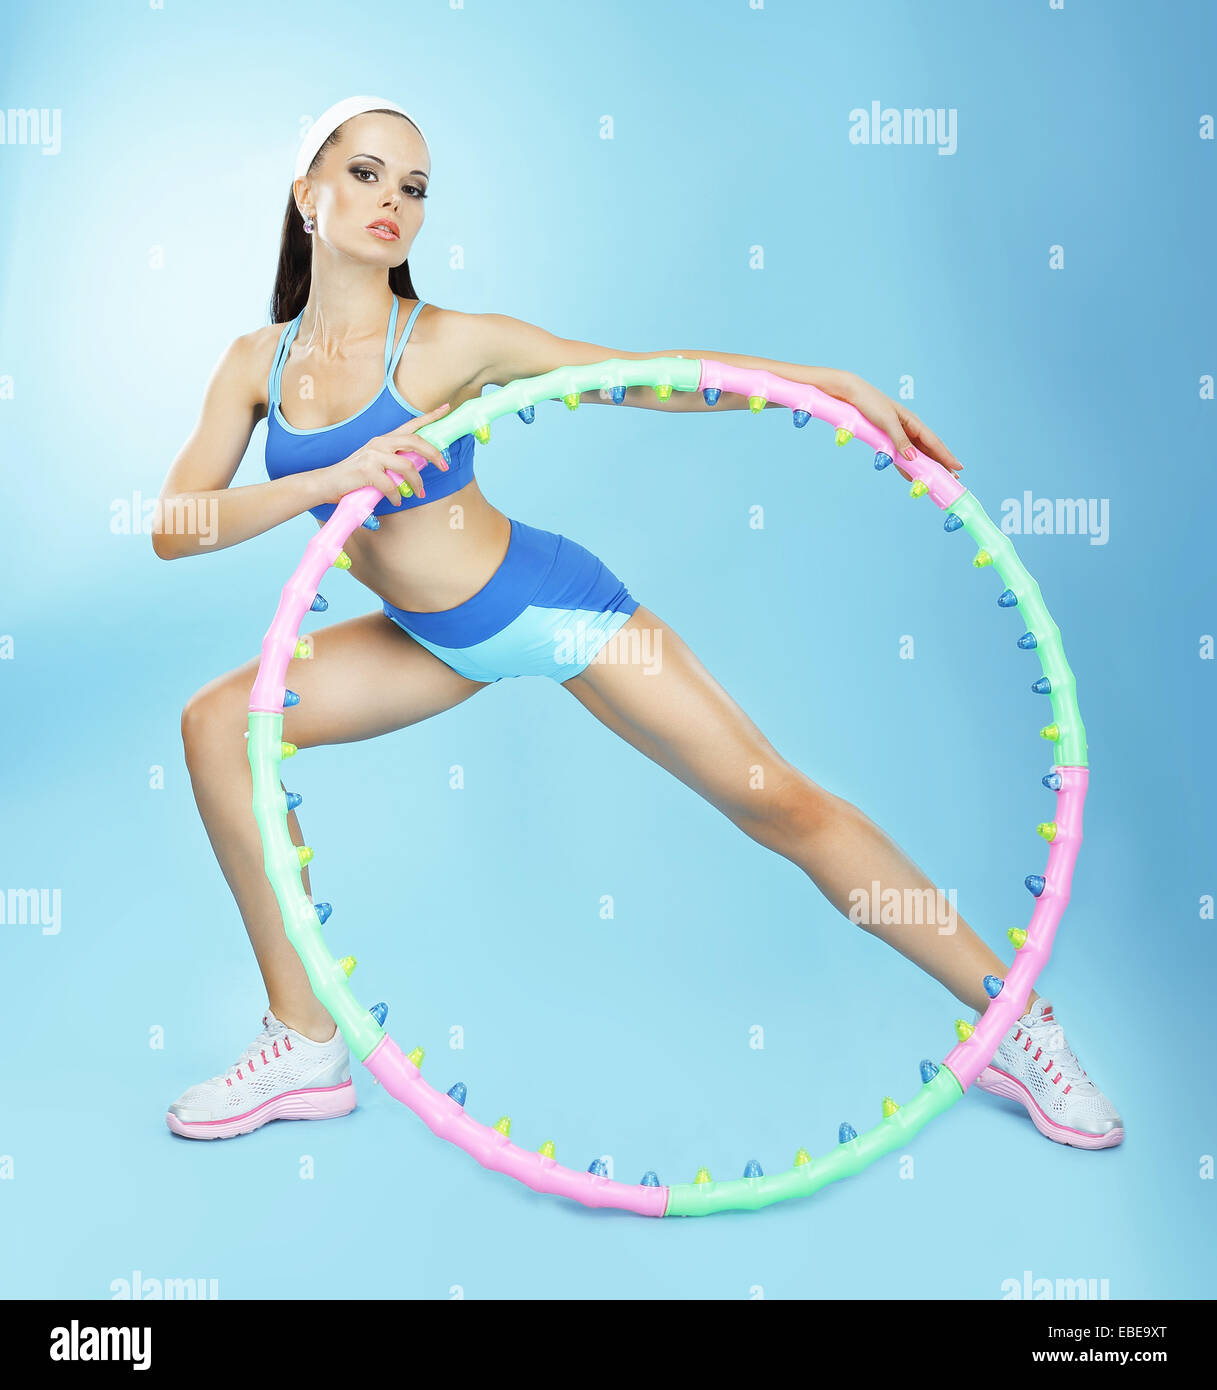 Gymnastik. Fit Woman Hoop im Fitnessclub Stockbild